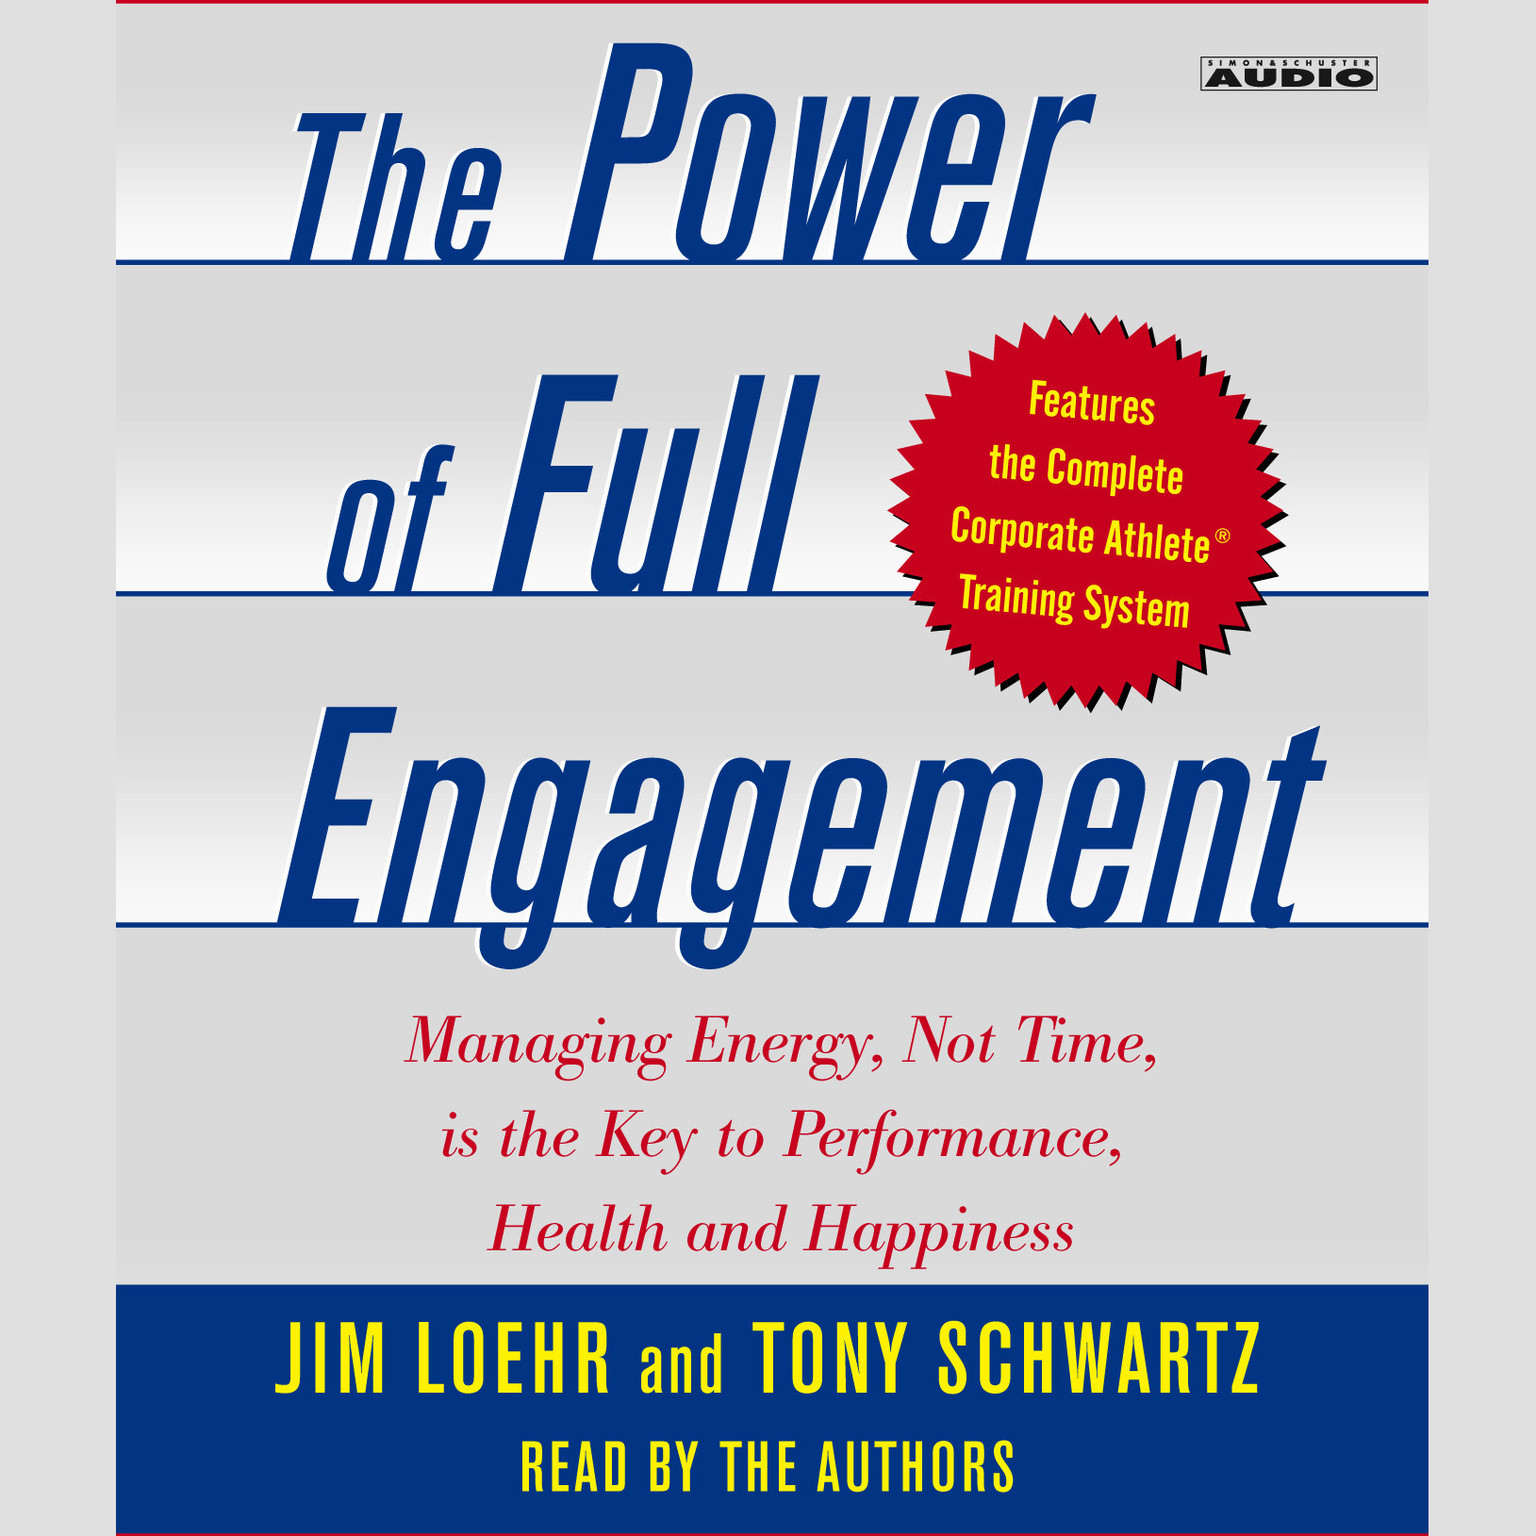 Printable The Power of Full Engagement: Managing Energy, Not Time, is the Key to High Performance and Personal Renewal Audiobook Cover Art